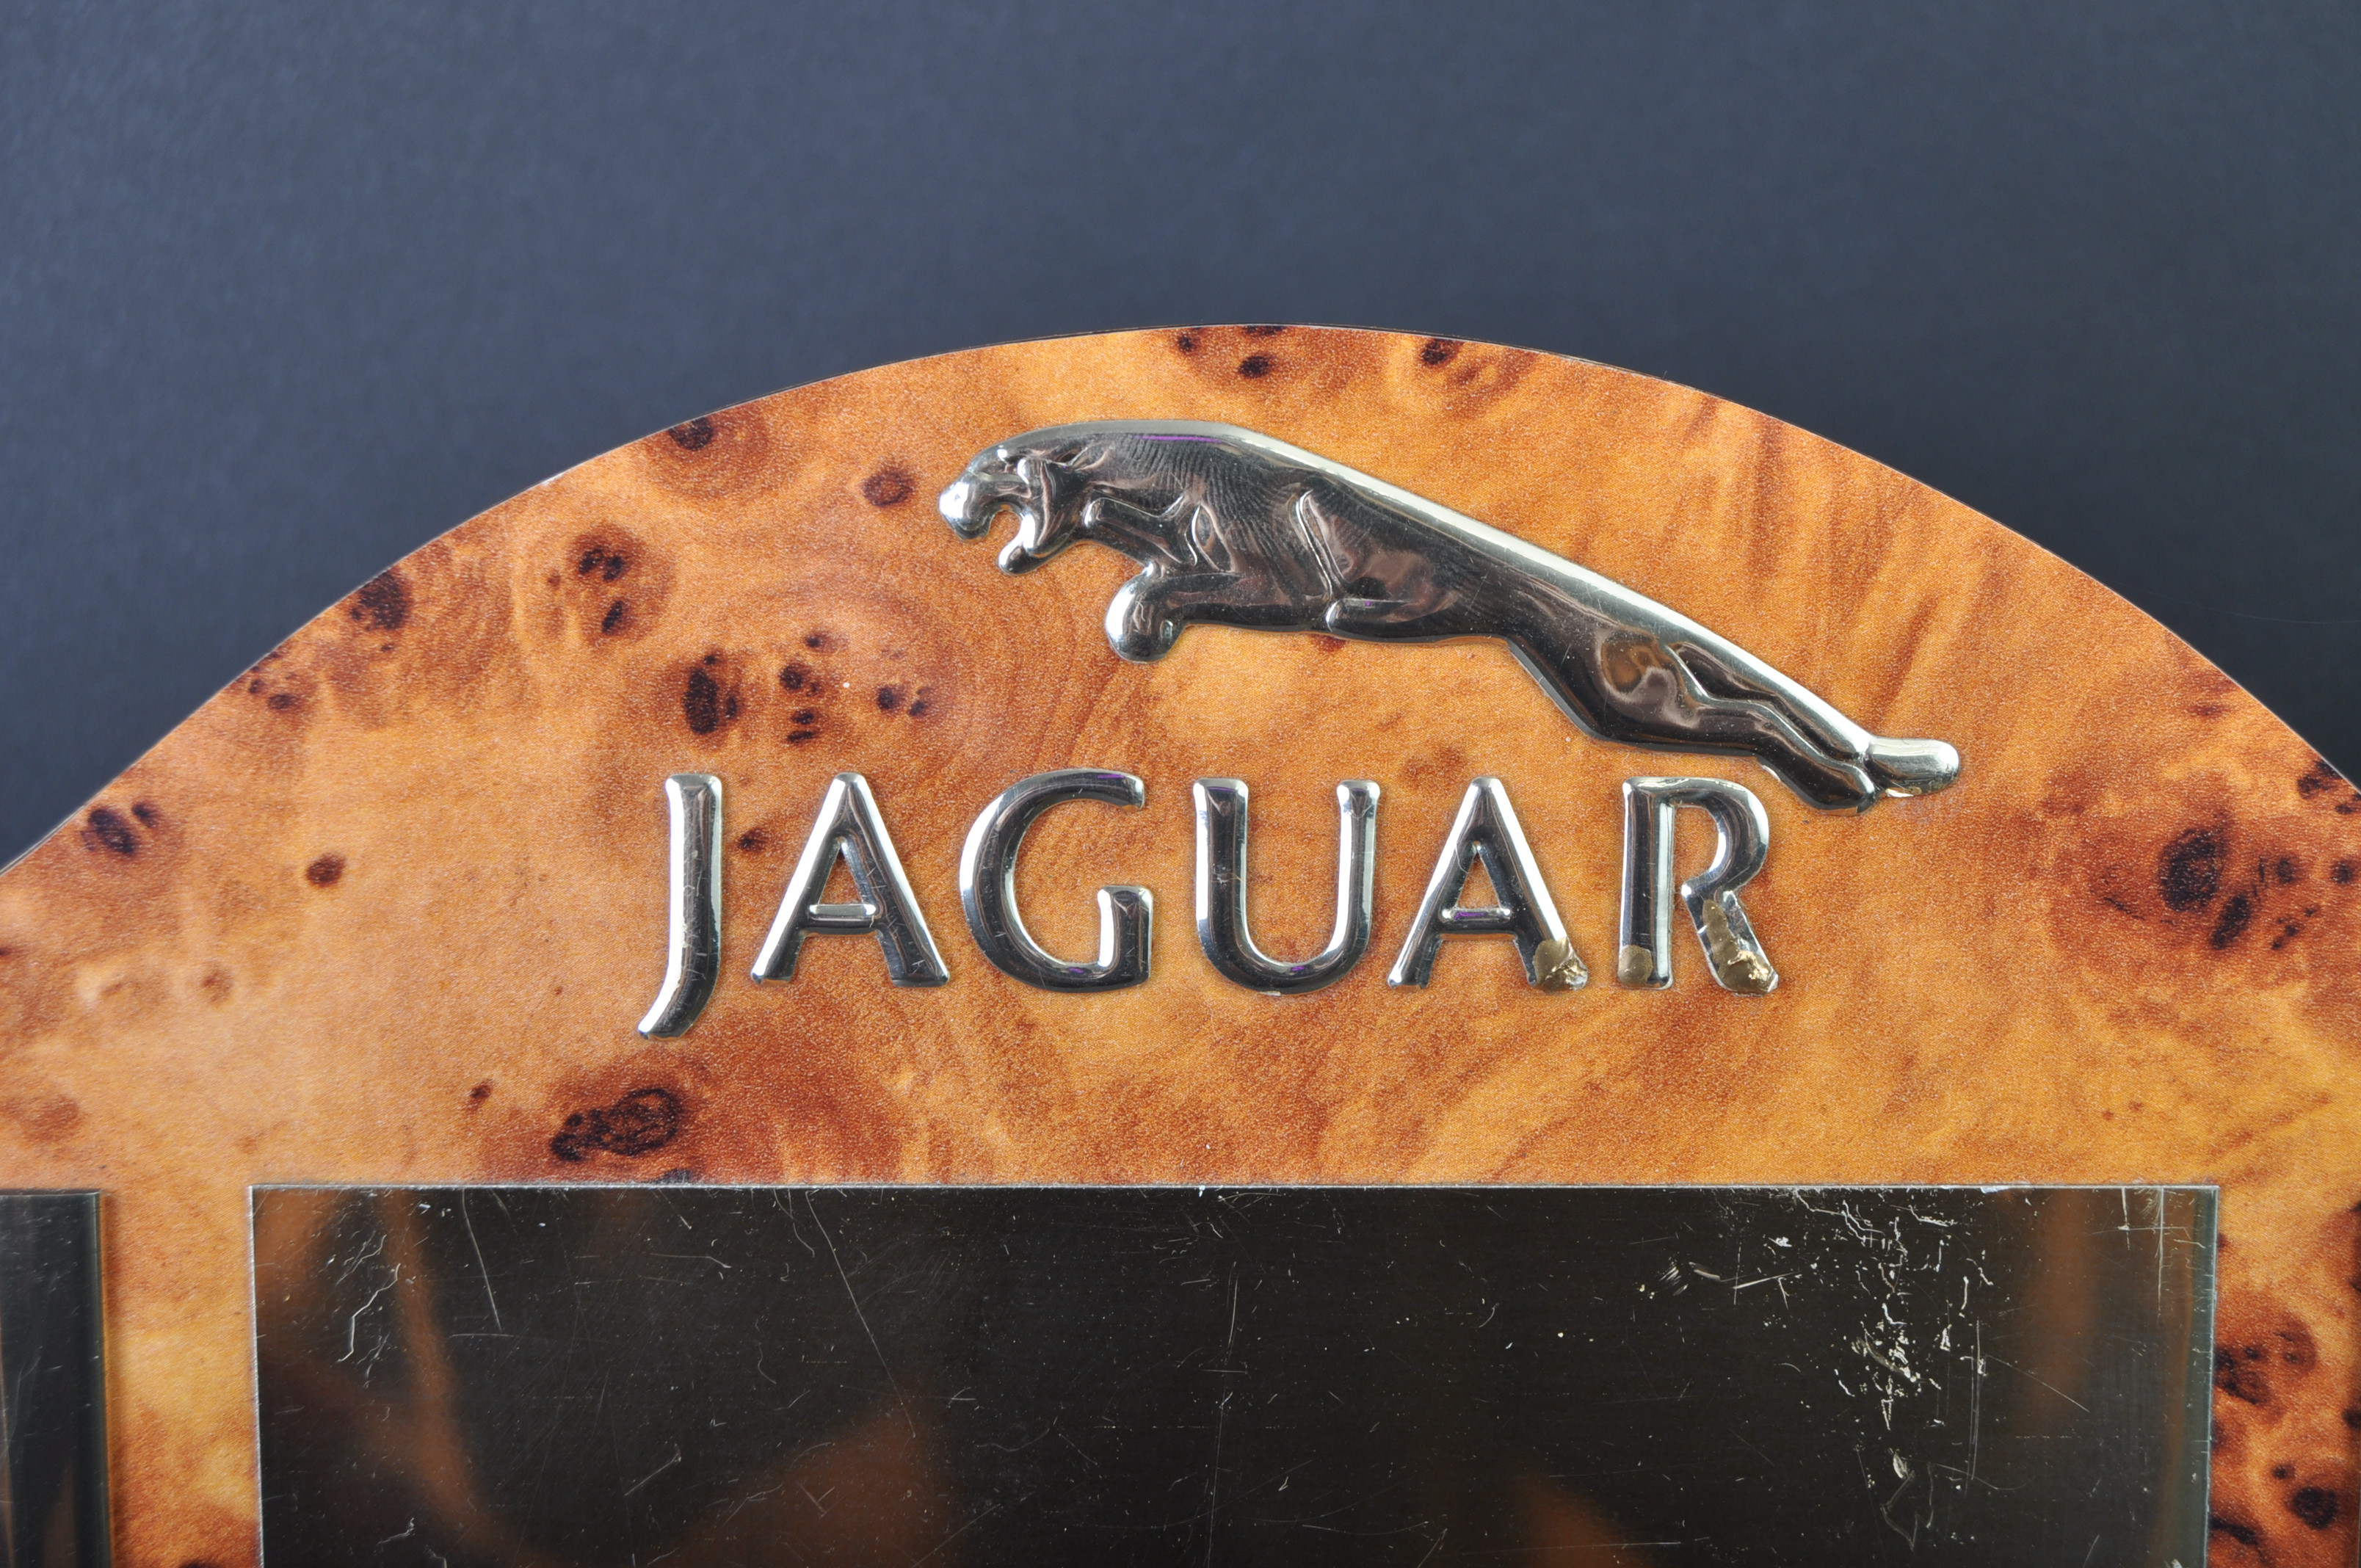 JAGUAR - ORIGINAL VINTAGE PERFUME / AFTERSHAVE SHOW DISPLAY - Image 3 of 6